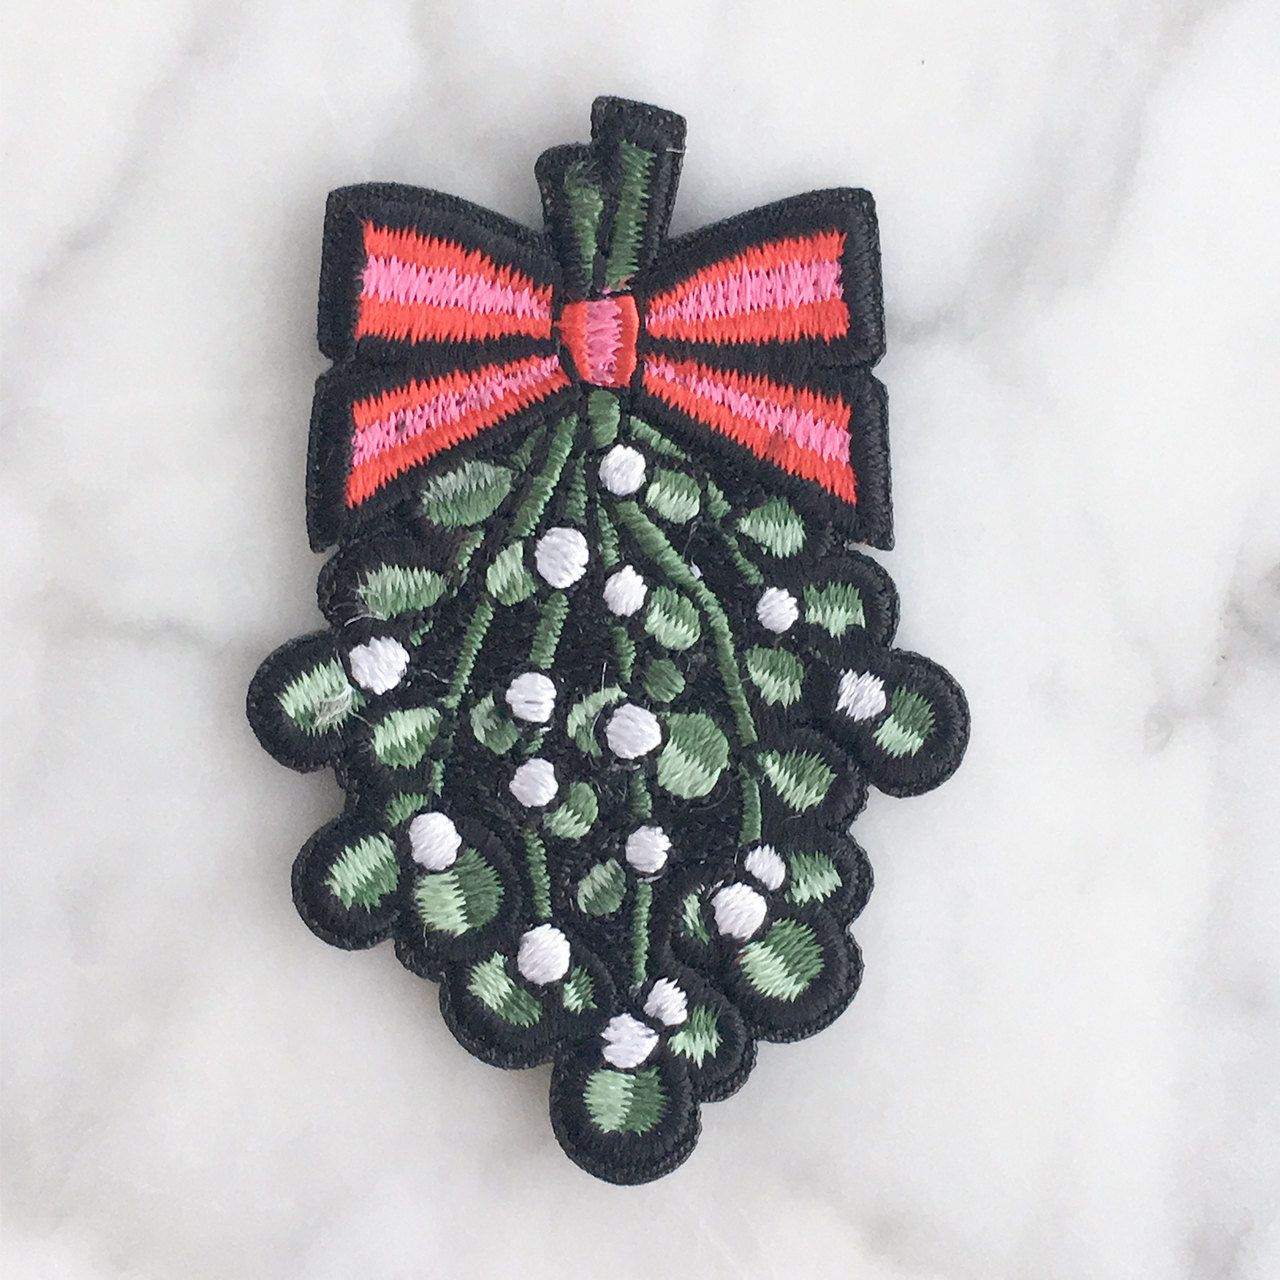 Small - Gingerbread Man - Christmas Cookie - Iron on Applique/Embroidered  Patch